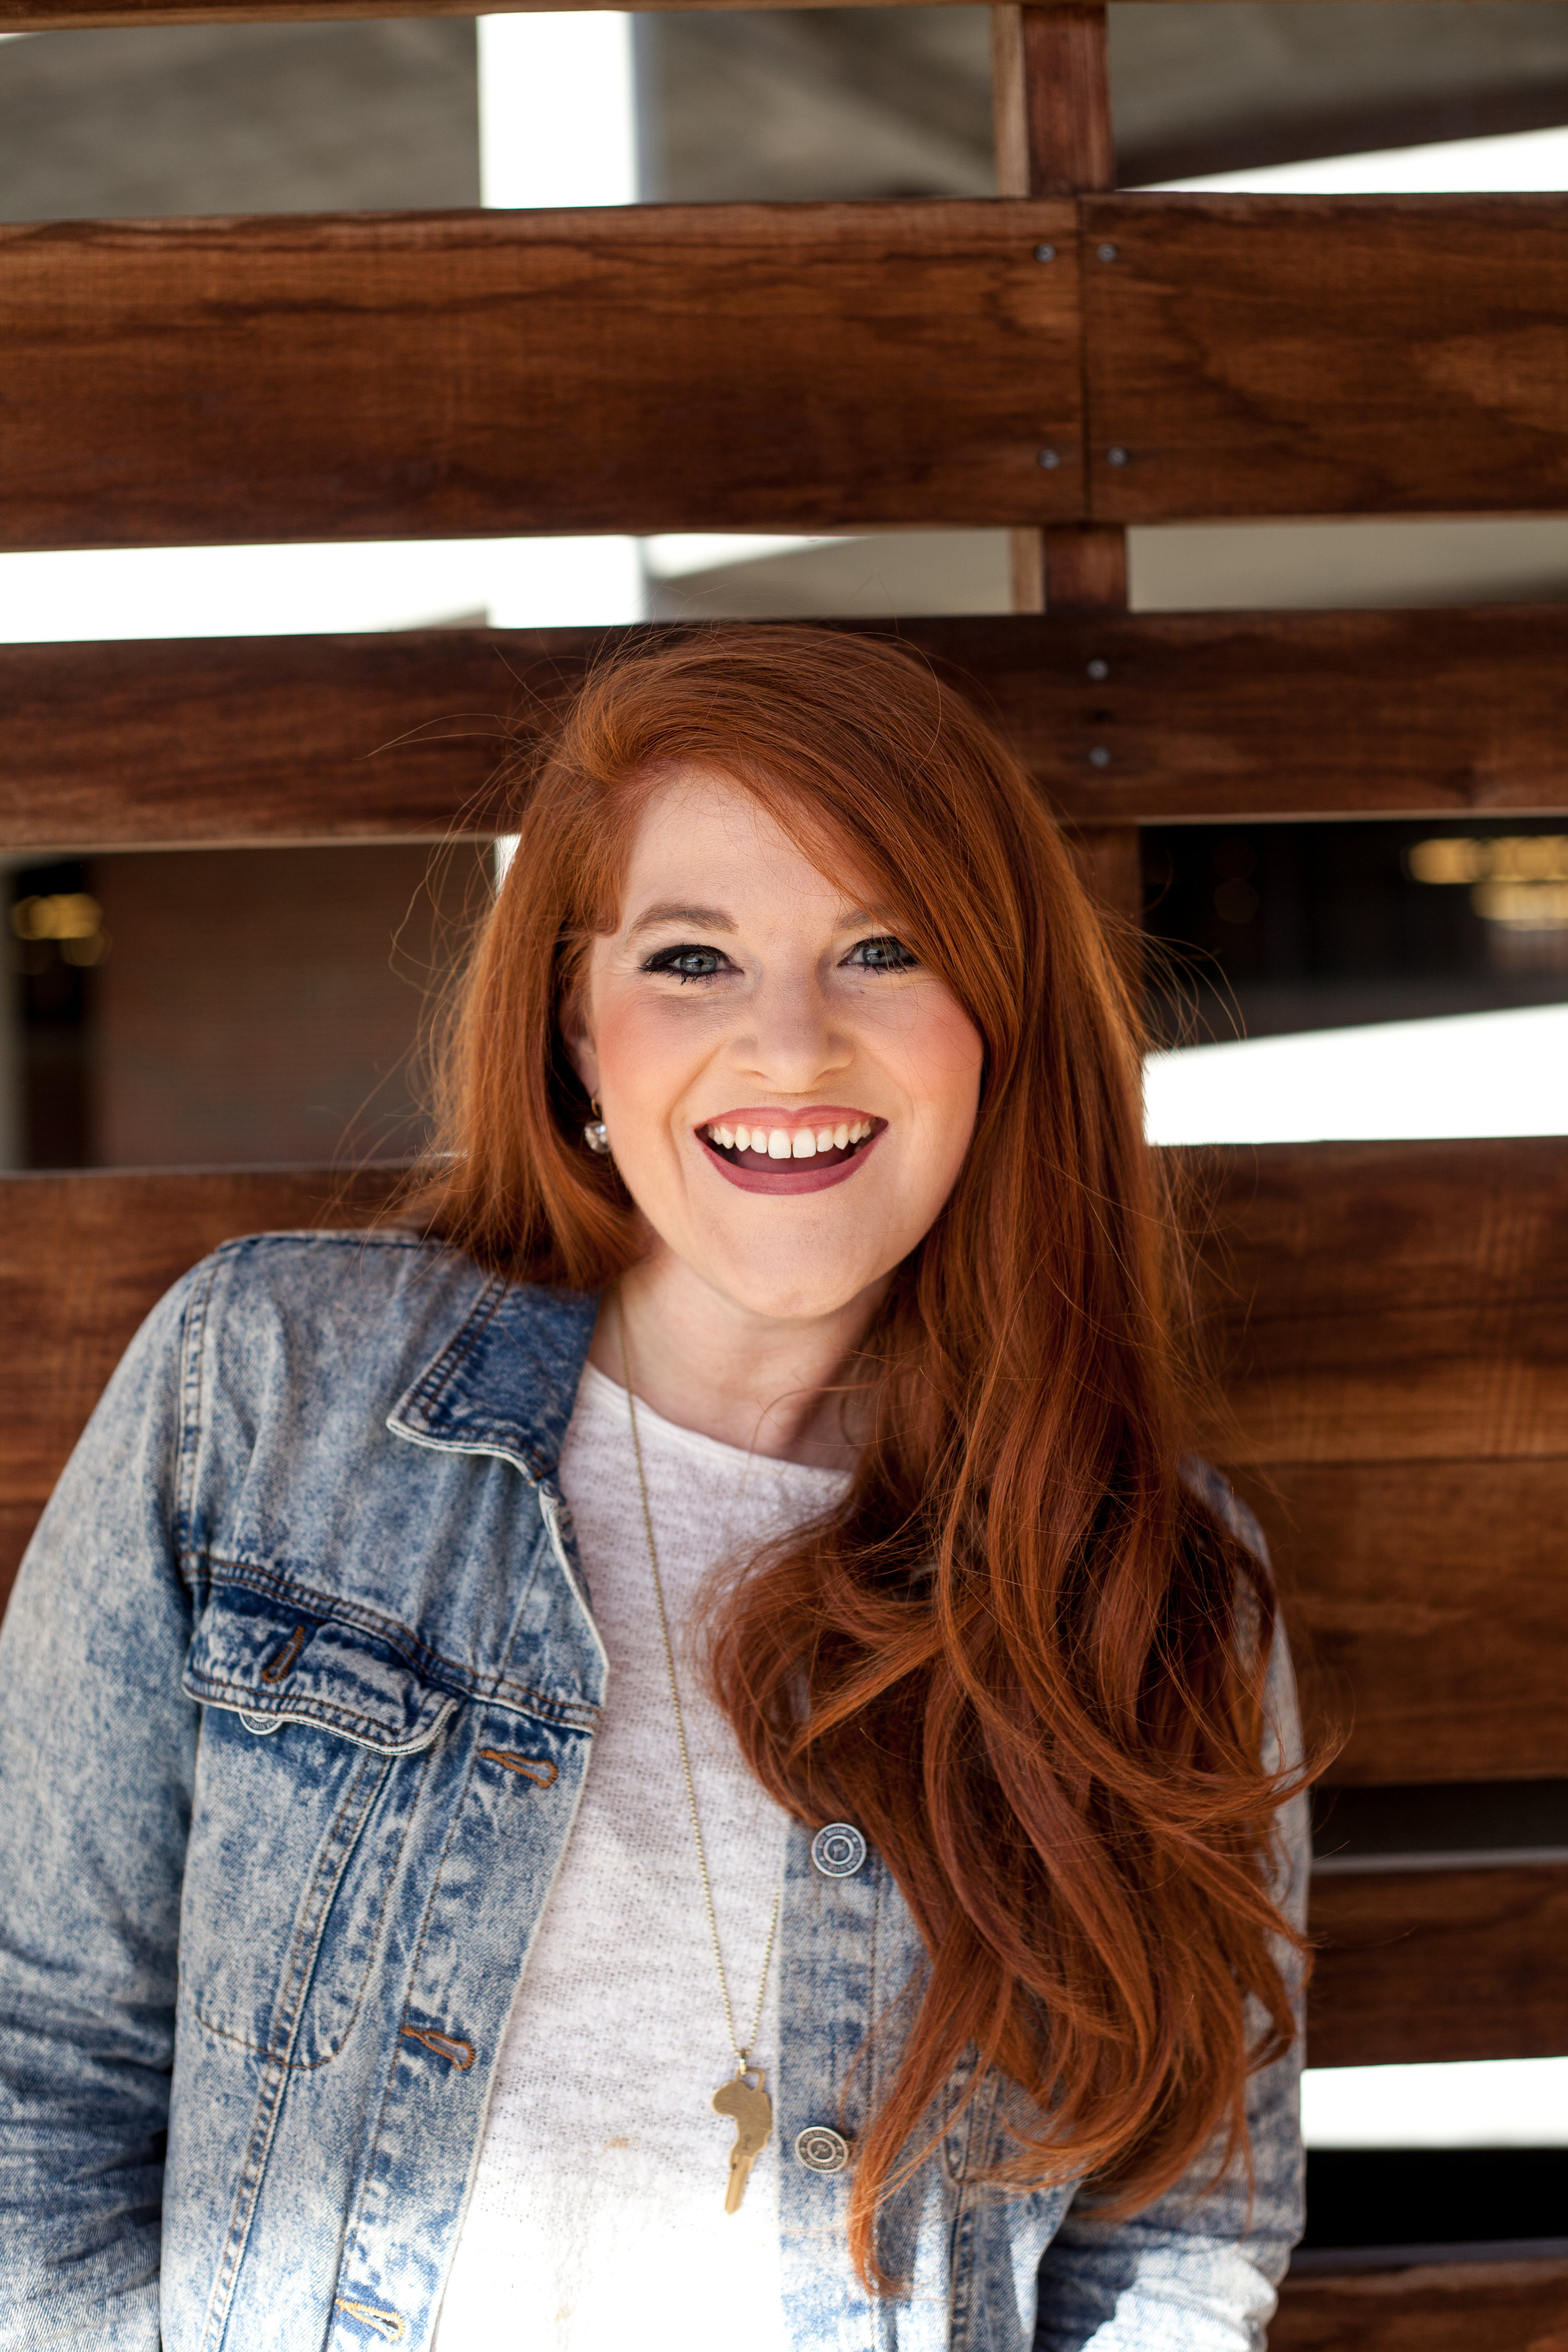 Ryn Tomlinson is the oldest of 6 girls and the only red head in her blended family, which means she is ACTUALLY a red headed step child. She has a passion for spurring people on to accomplish their God given dreams, and helping them do so from a place of being settled in their identity in Christ. She's a writer, teacher, creator, leader, and connector of people.